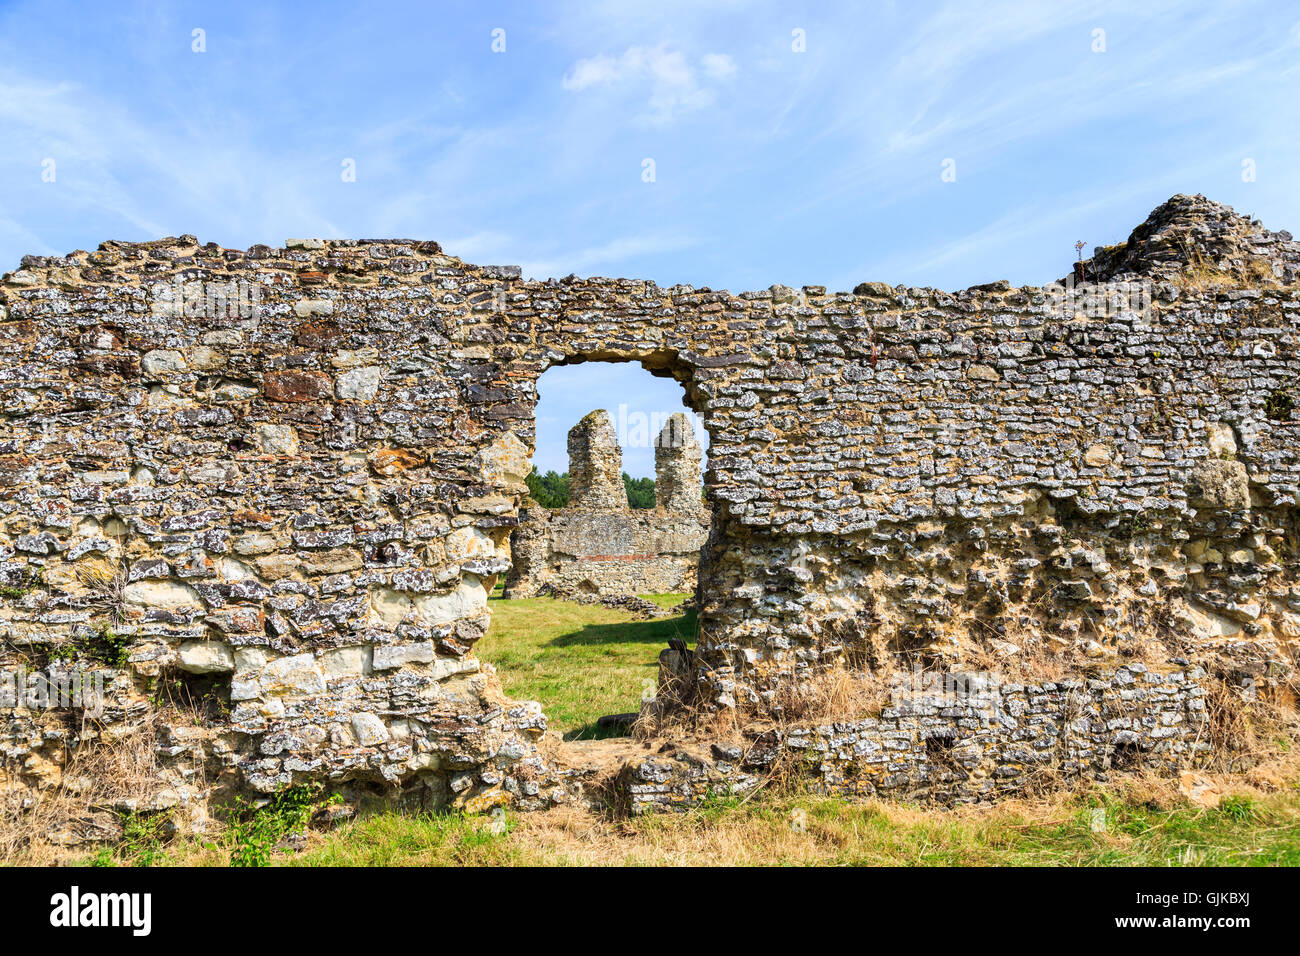 Ruins of Waverley Abbey, founded in 1128, the first Cistercian abbey in England, a Scheduled Ancient Monument, near - Stock Image